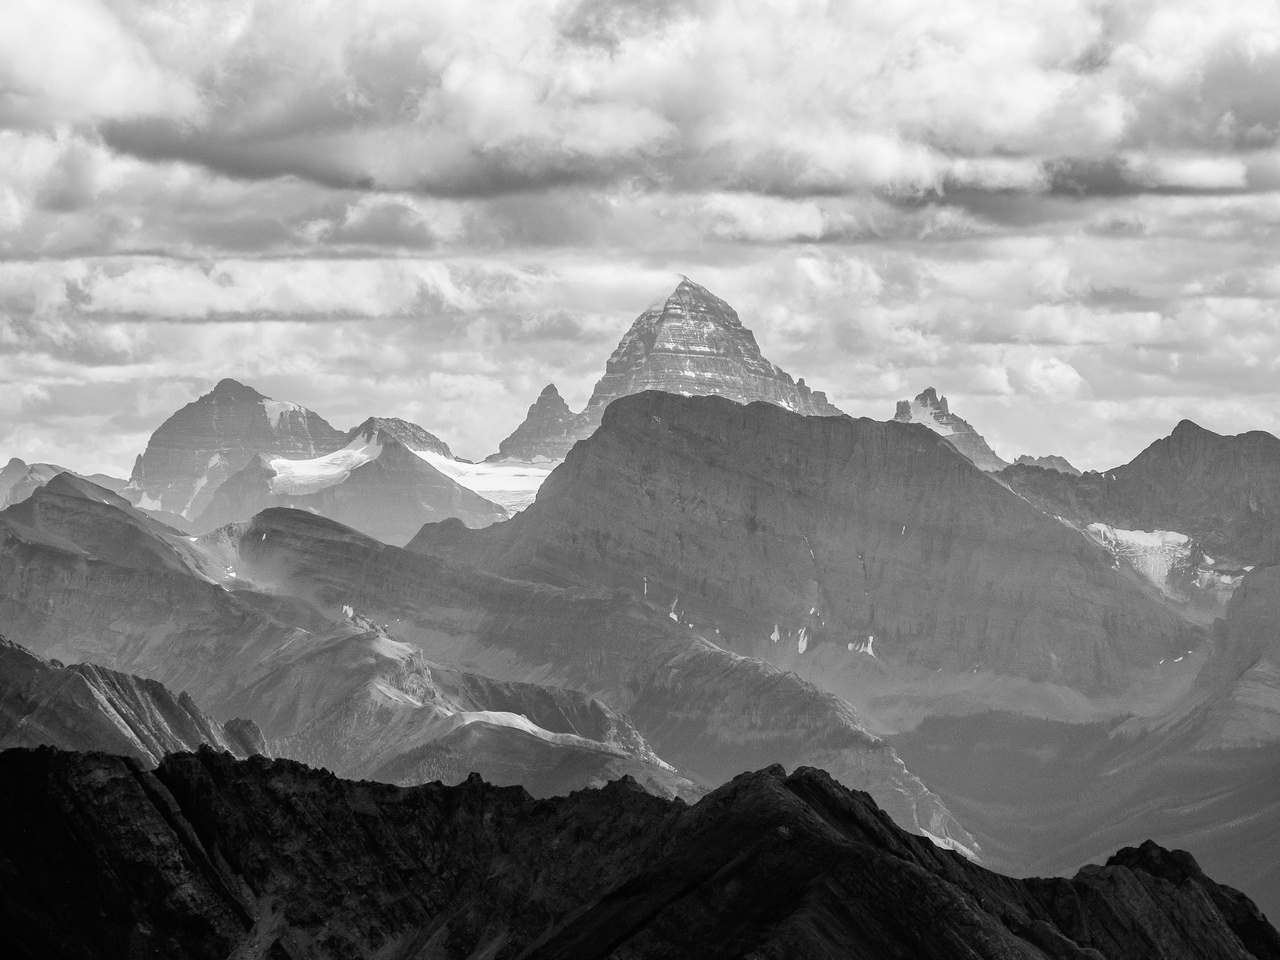 The always dramatic and impressive Mount Assiniboine looms over everything with Lunette actually looking like a peak for once and Eon to the left.